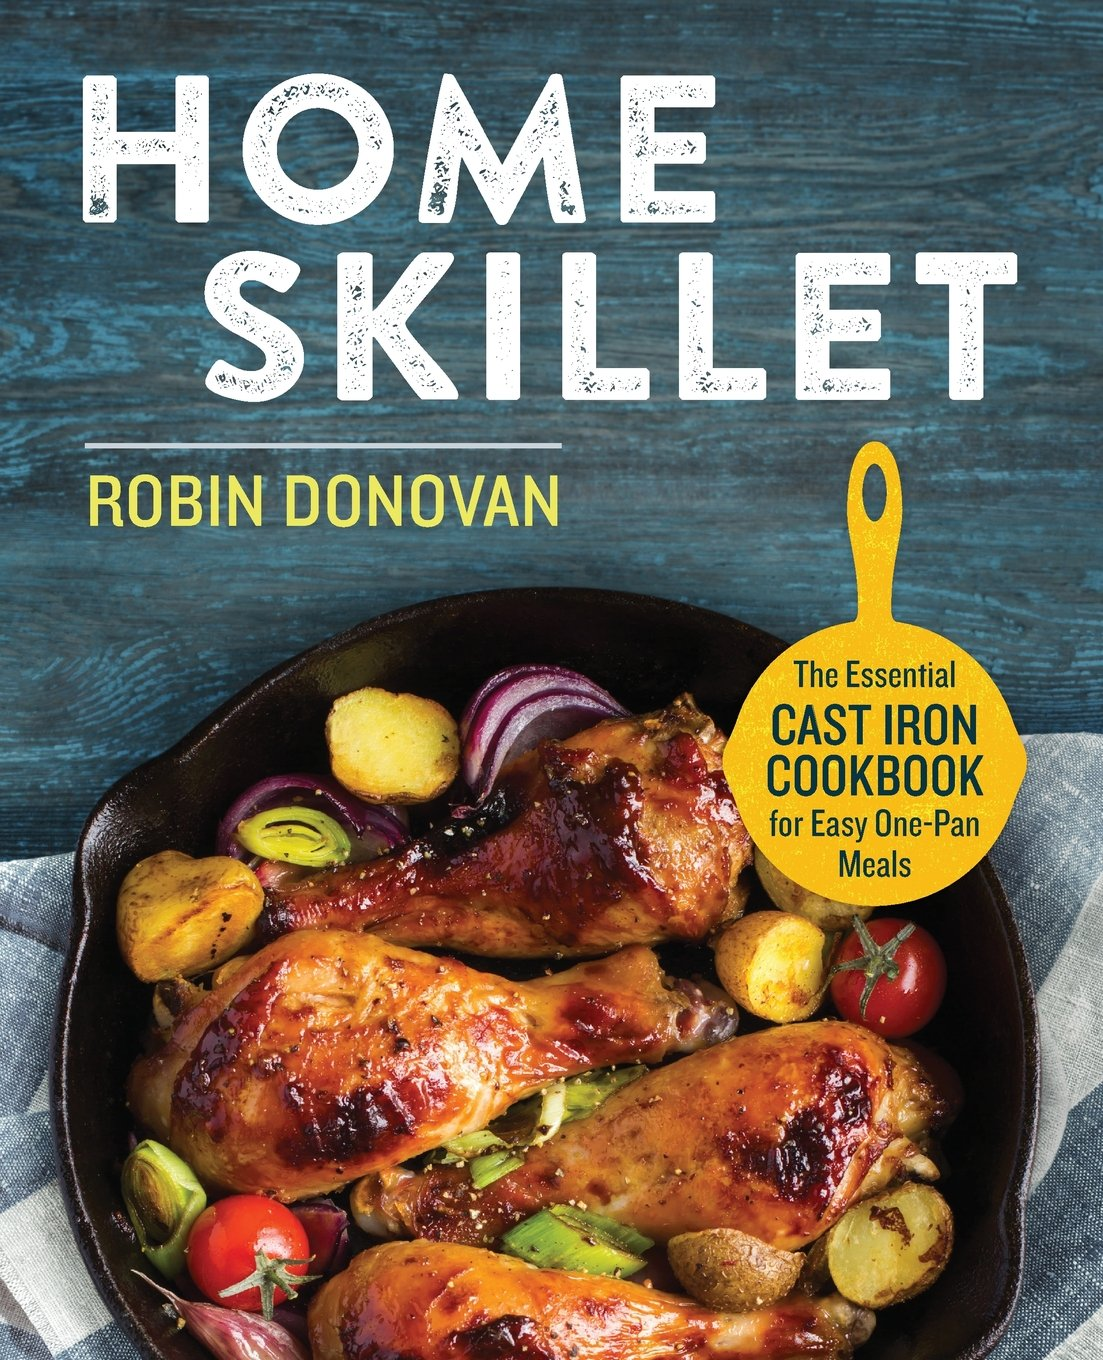 Home Skillet: The Essential Cast Iron Cookbook for Easy One-Pan Meals Paperback – July 19, 2016 Robin Donovan Rockridge Press 1623157552 Methods - Quick & Easy